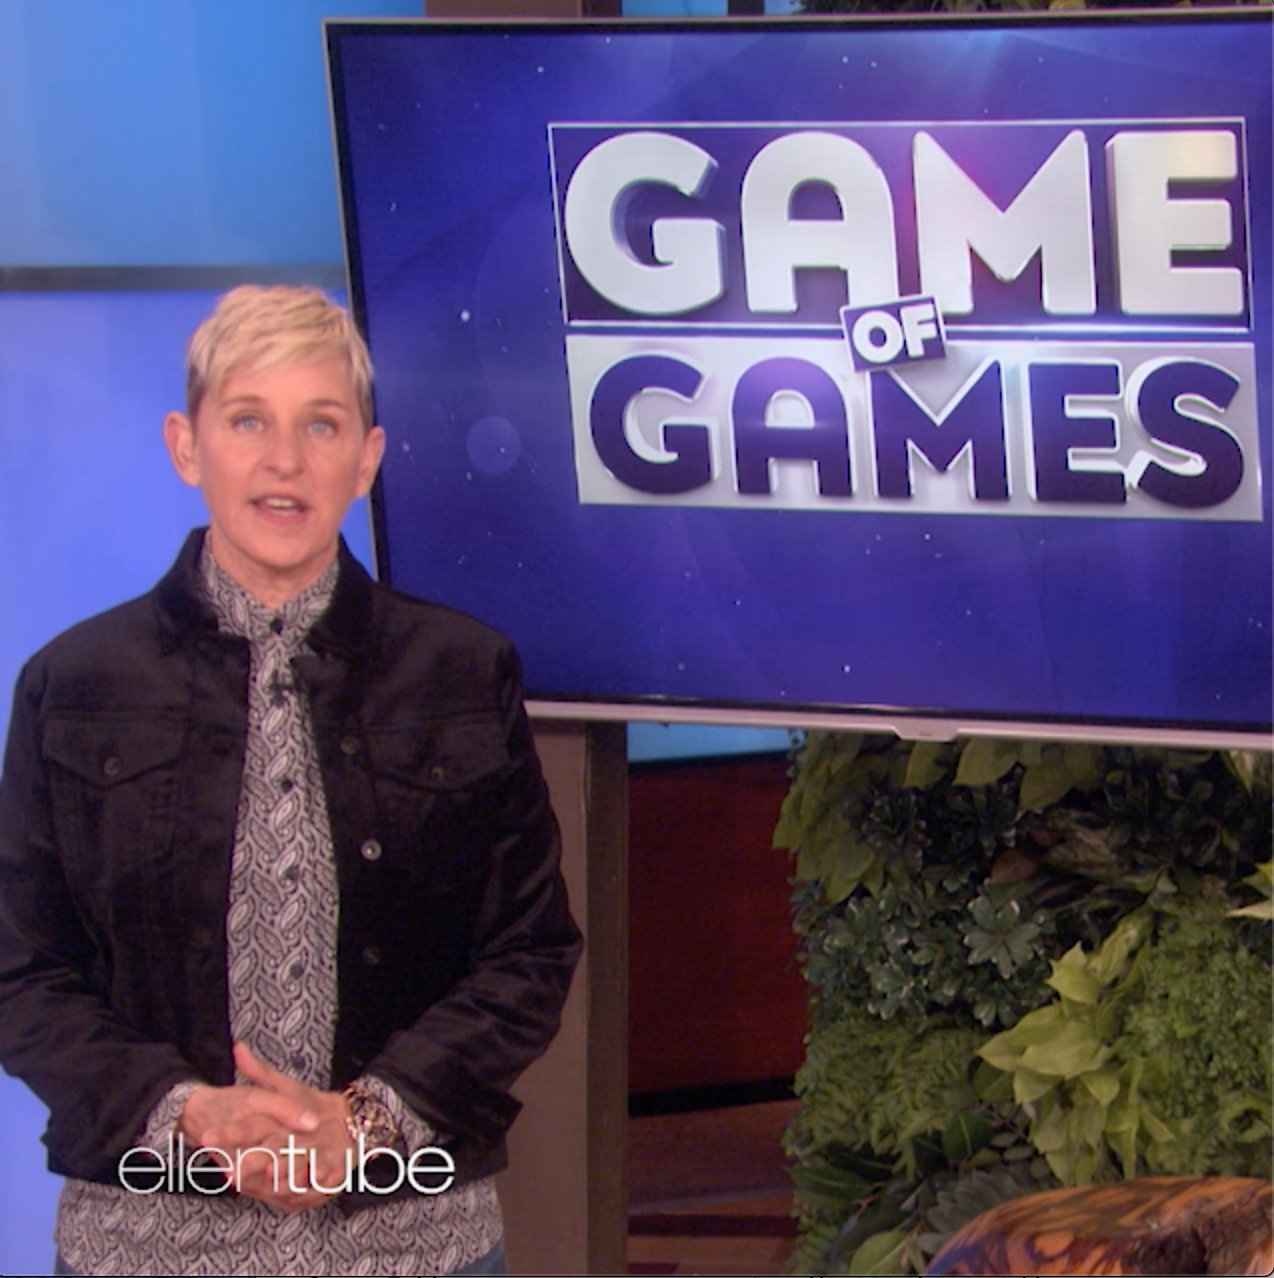 Who's ready to play #GameofGames?  App Store: https://t.co/aszop5EYvH Google Play: https://t.co/pjF3RTQv5s https://t.co/XhHEhfJsnr